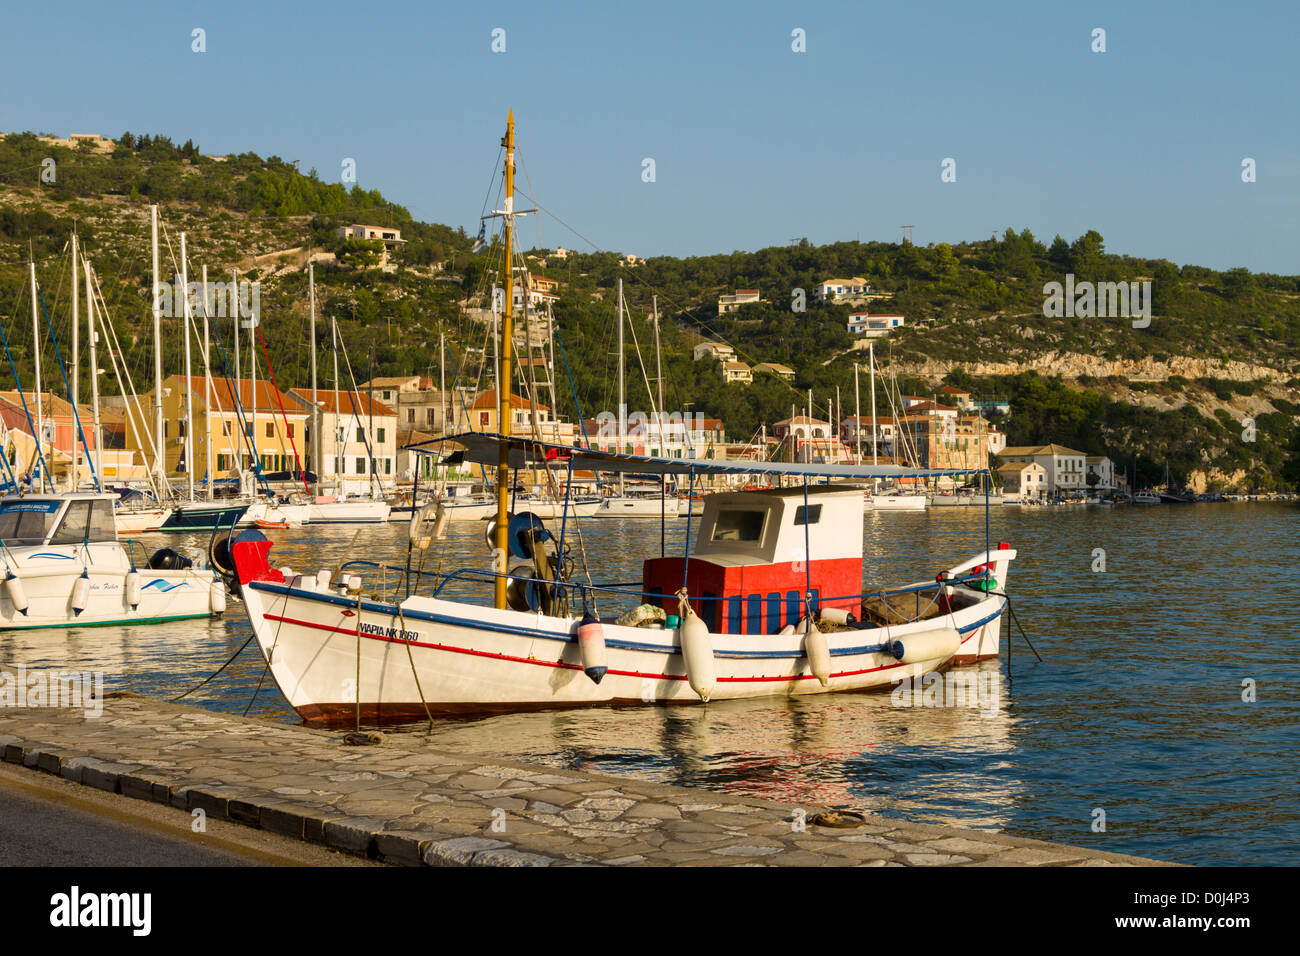 Fishing boat moored at Gaios harbour Paxos, Greece - Stock Image